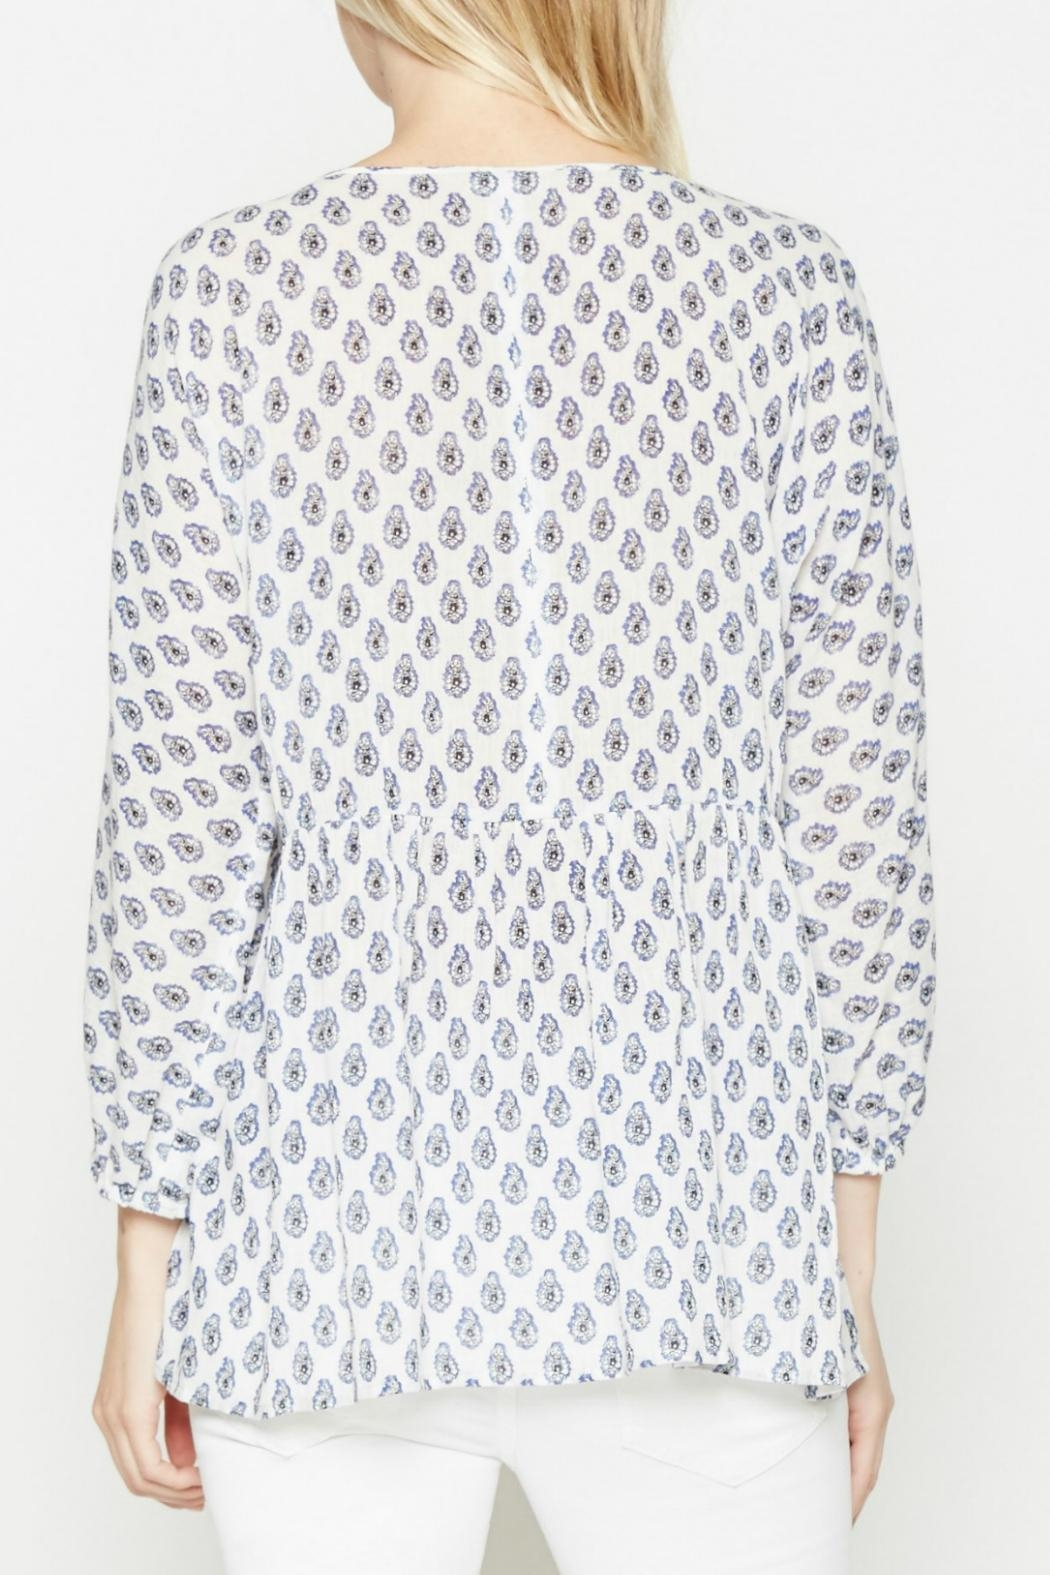 Soft Joie White Patterned Tassle Top - Front Full Image